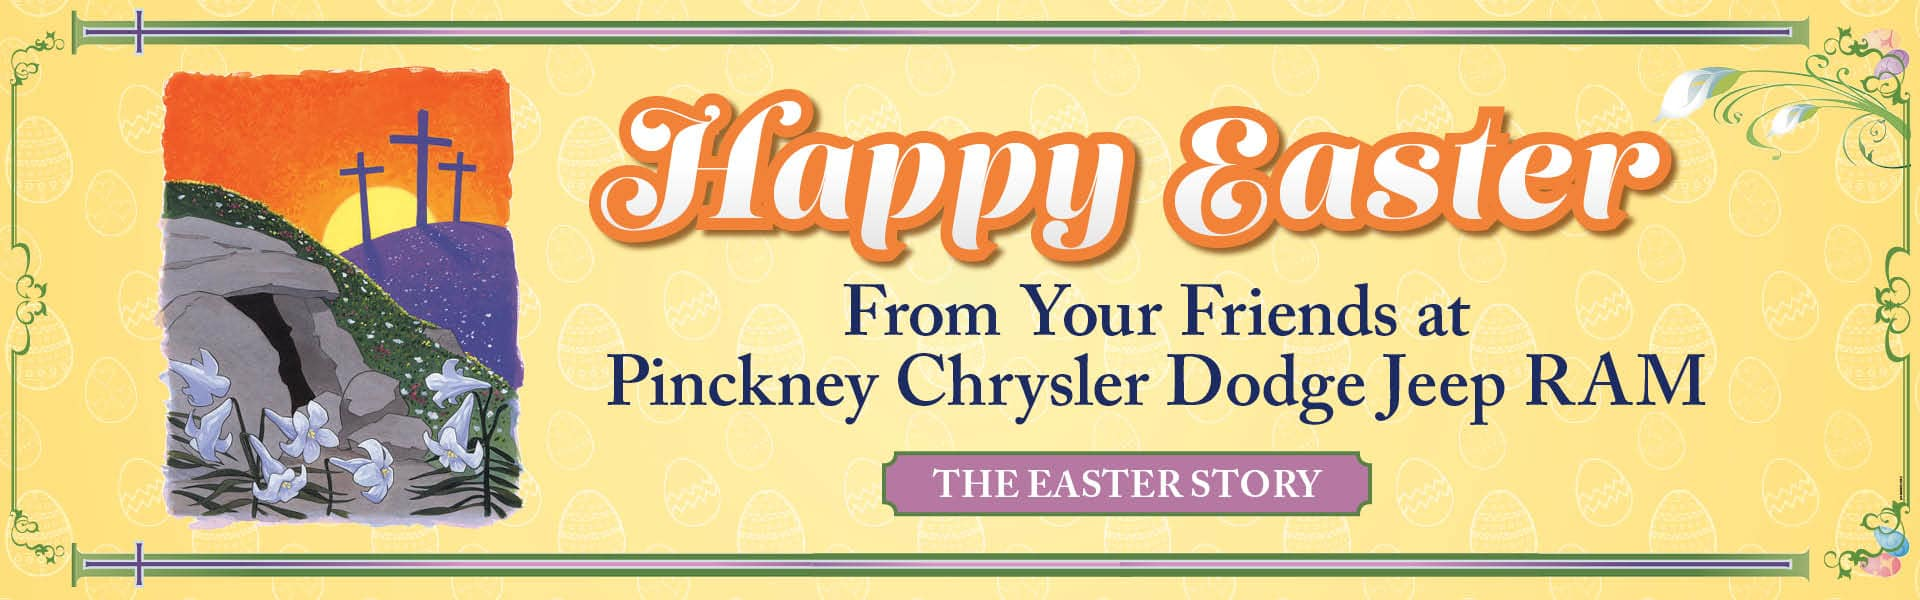 Happy Easter from Pinckney Chrysler Dodge Jeep RAM